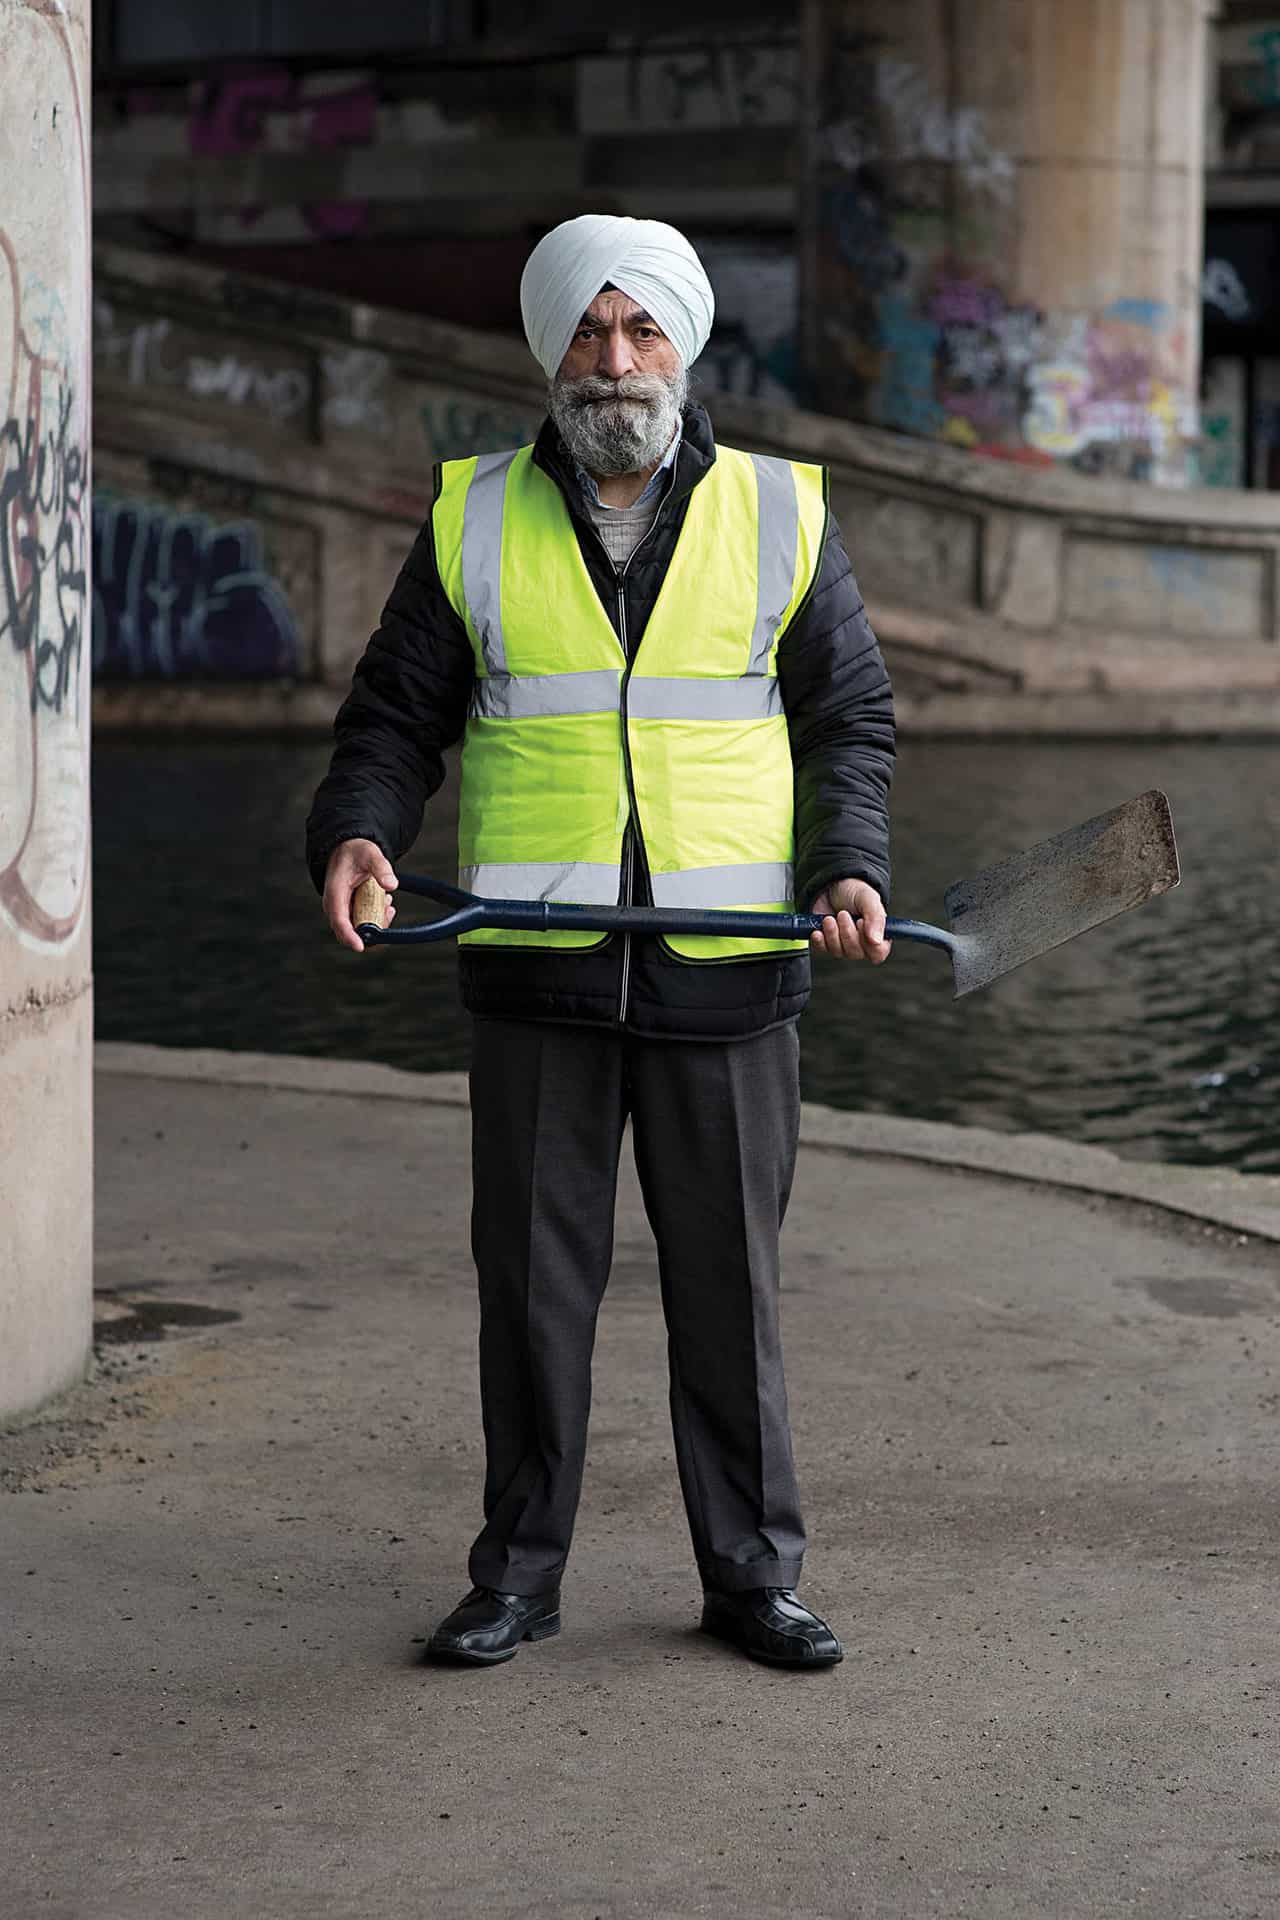 Surinder Singh at the base of the Spaghetti Junction, Birmingham, 2019